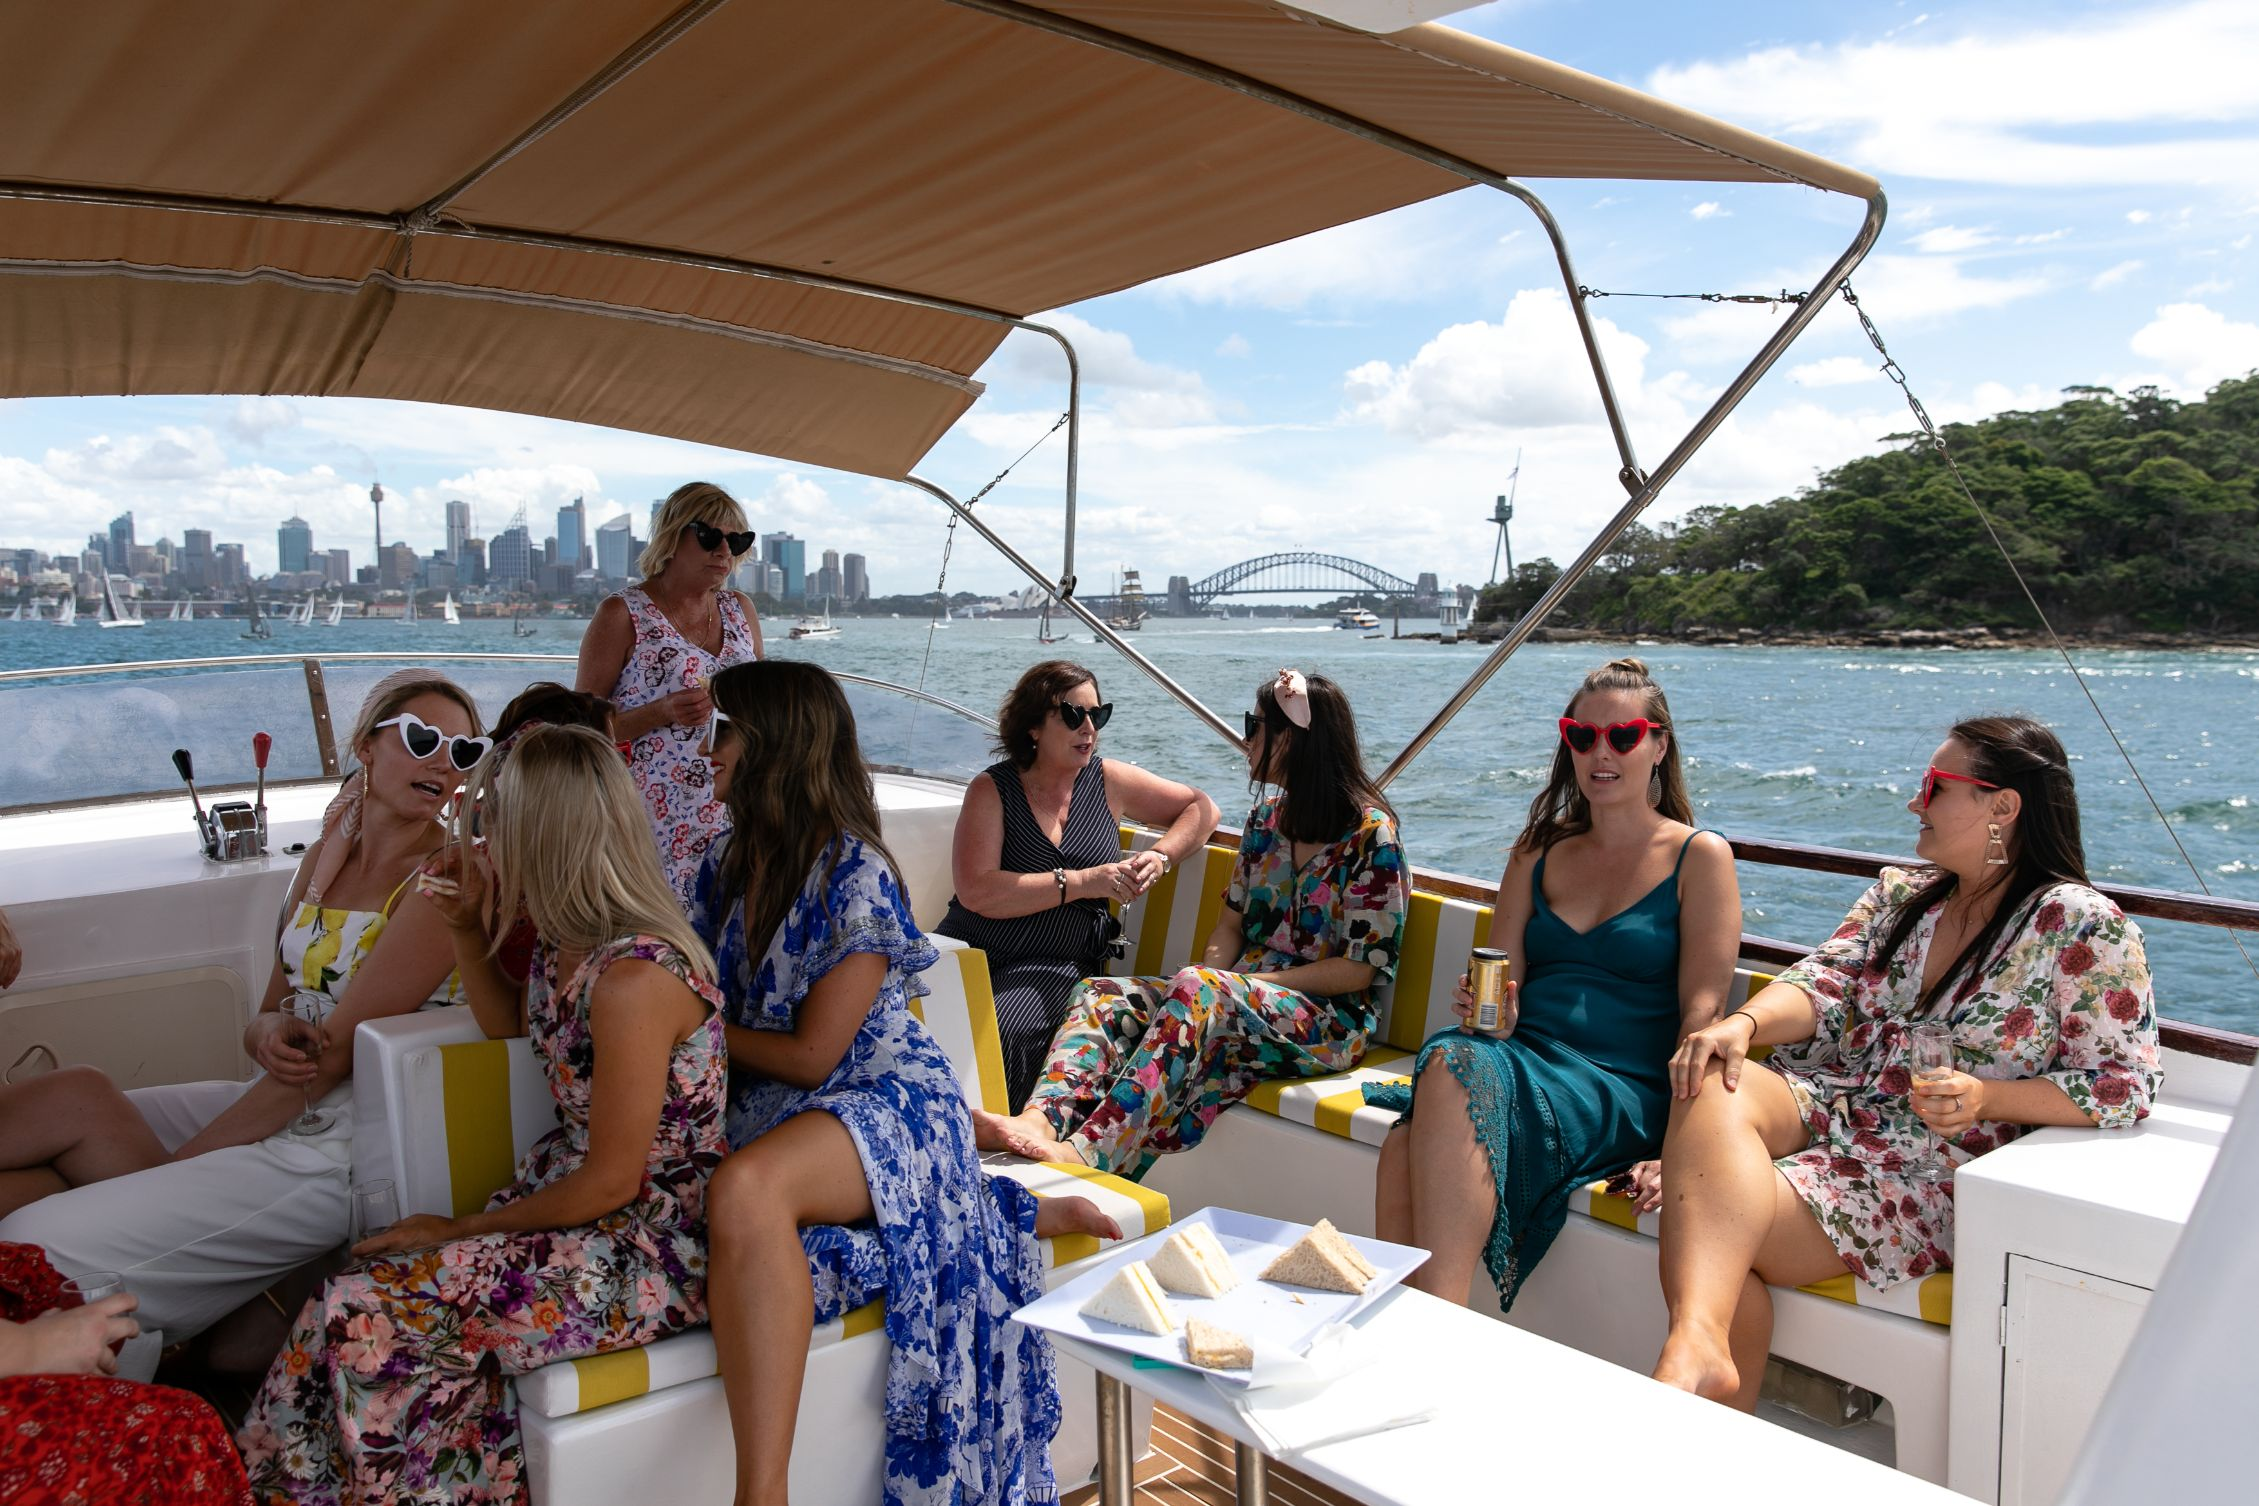 Silver Spirit - A luxury cruising experience for groups at an affordable price.